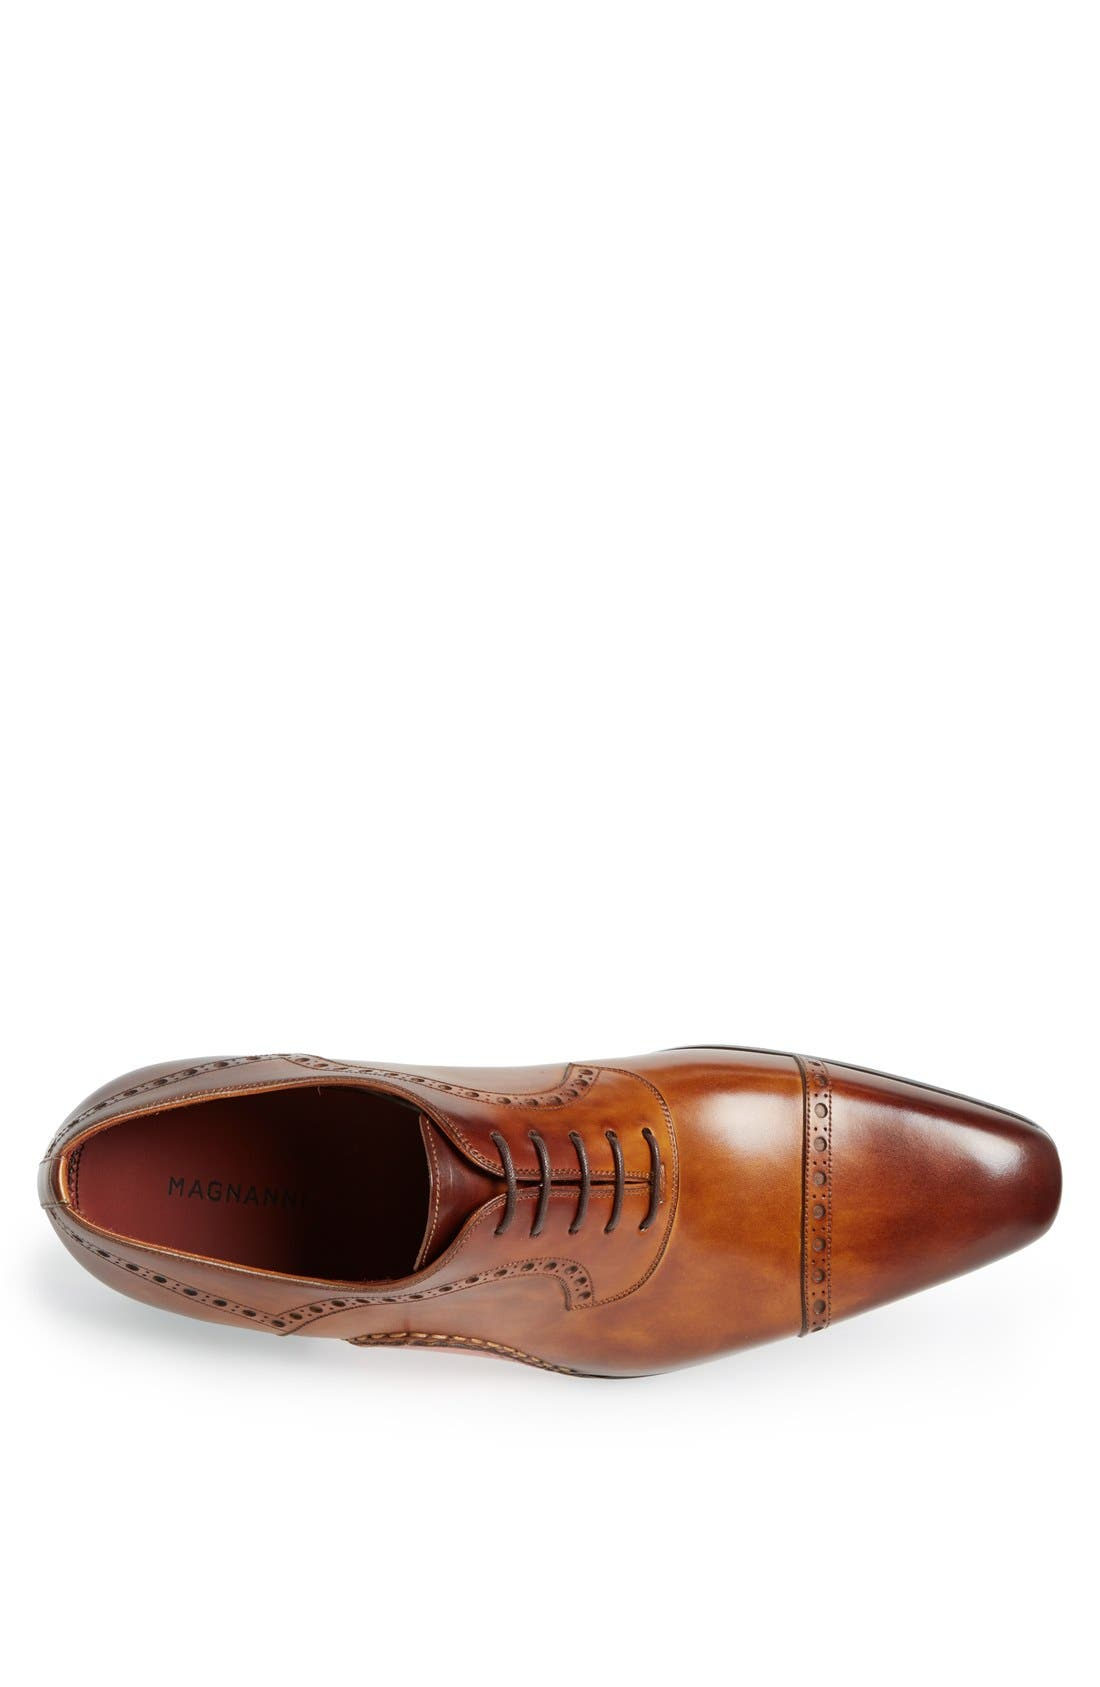 Alternate Image 3  - Magnanni 'Cris' Cap Toe Oxford